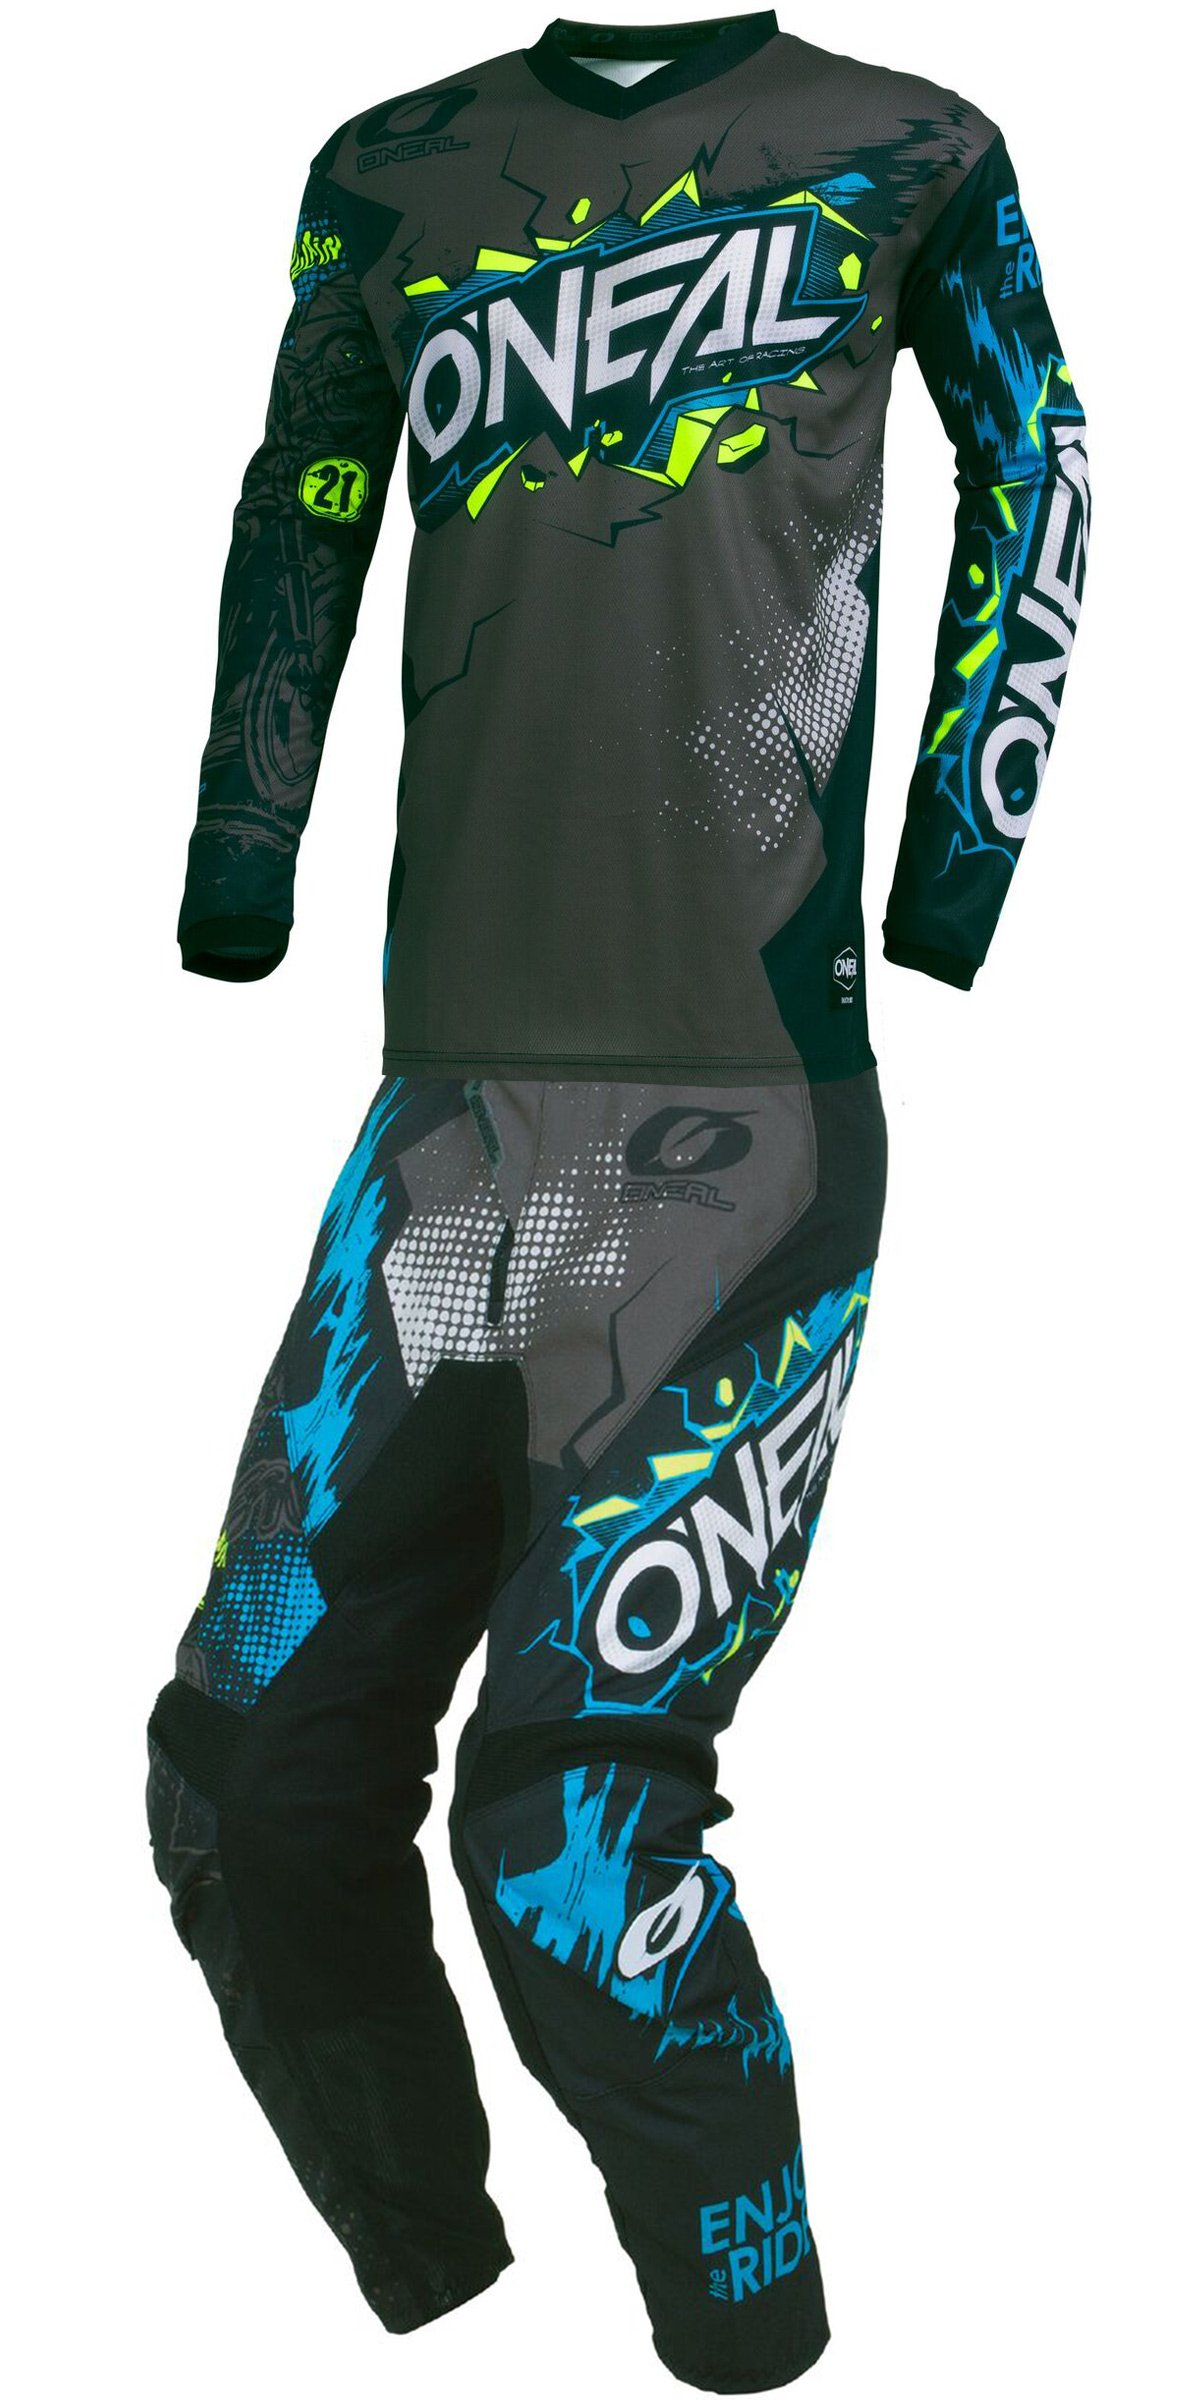 O'Neal - 2019 Element Villain (Mens Grey & Black X-Large/34W) MX Riding Gear Combo Set, Motocross Off-Road Dirt Bike Jersey & Pant